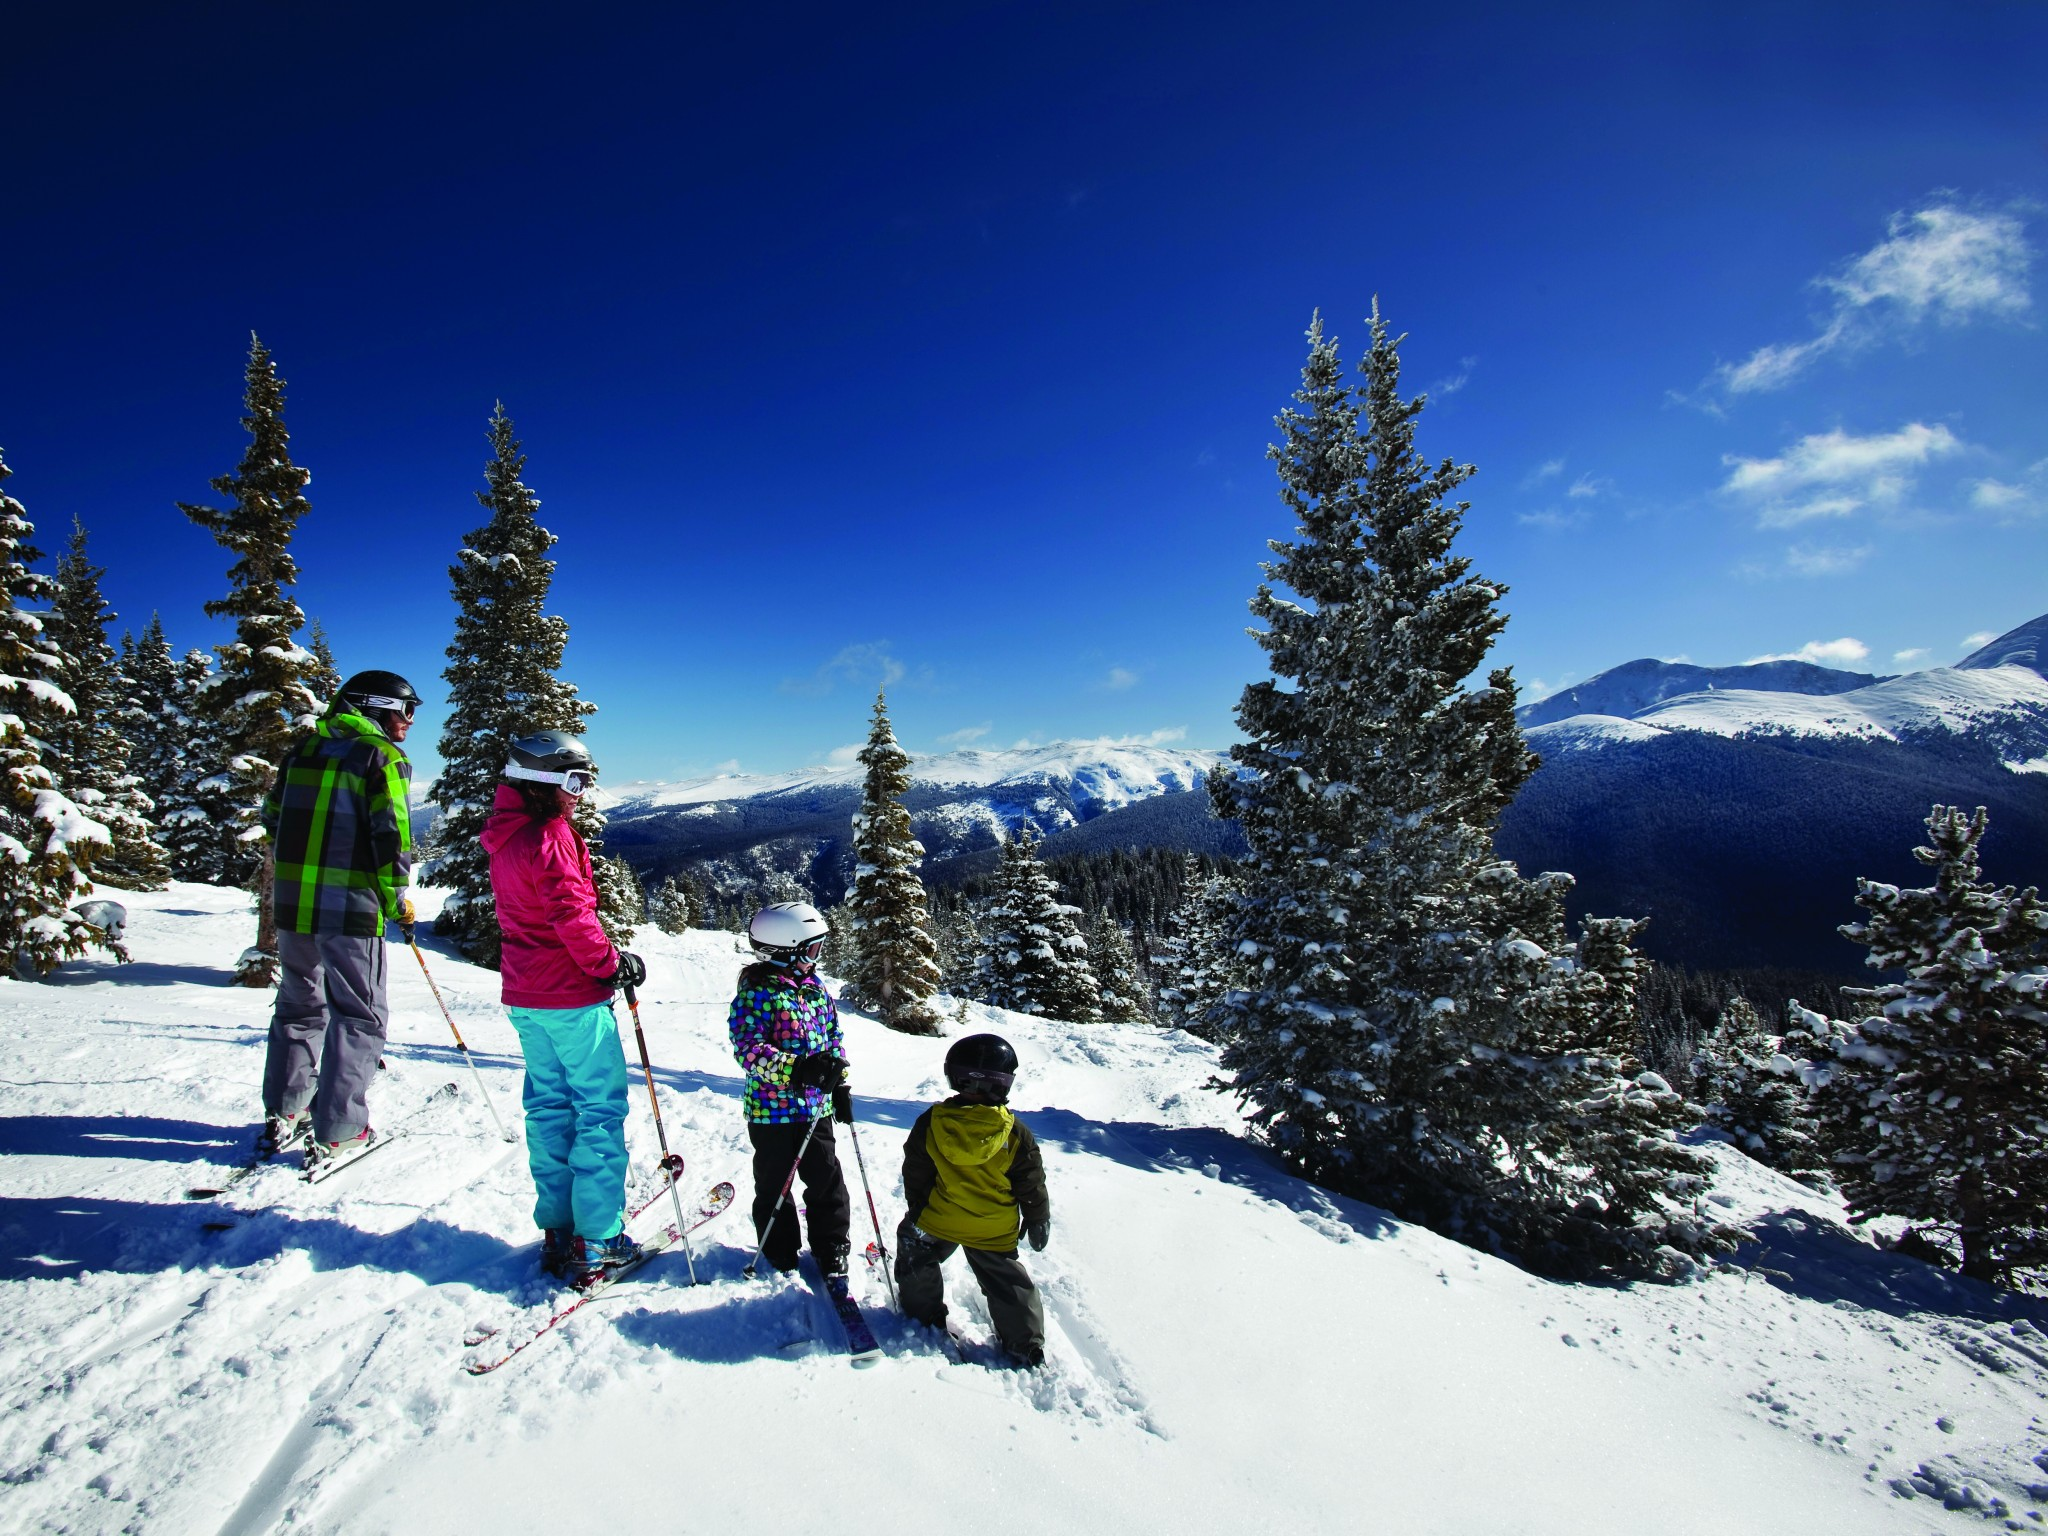 The Family Ski Holiday  How To Get It Right  InTheSnow